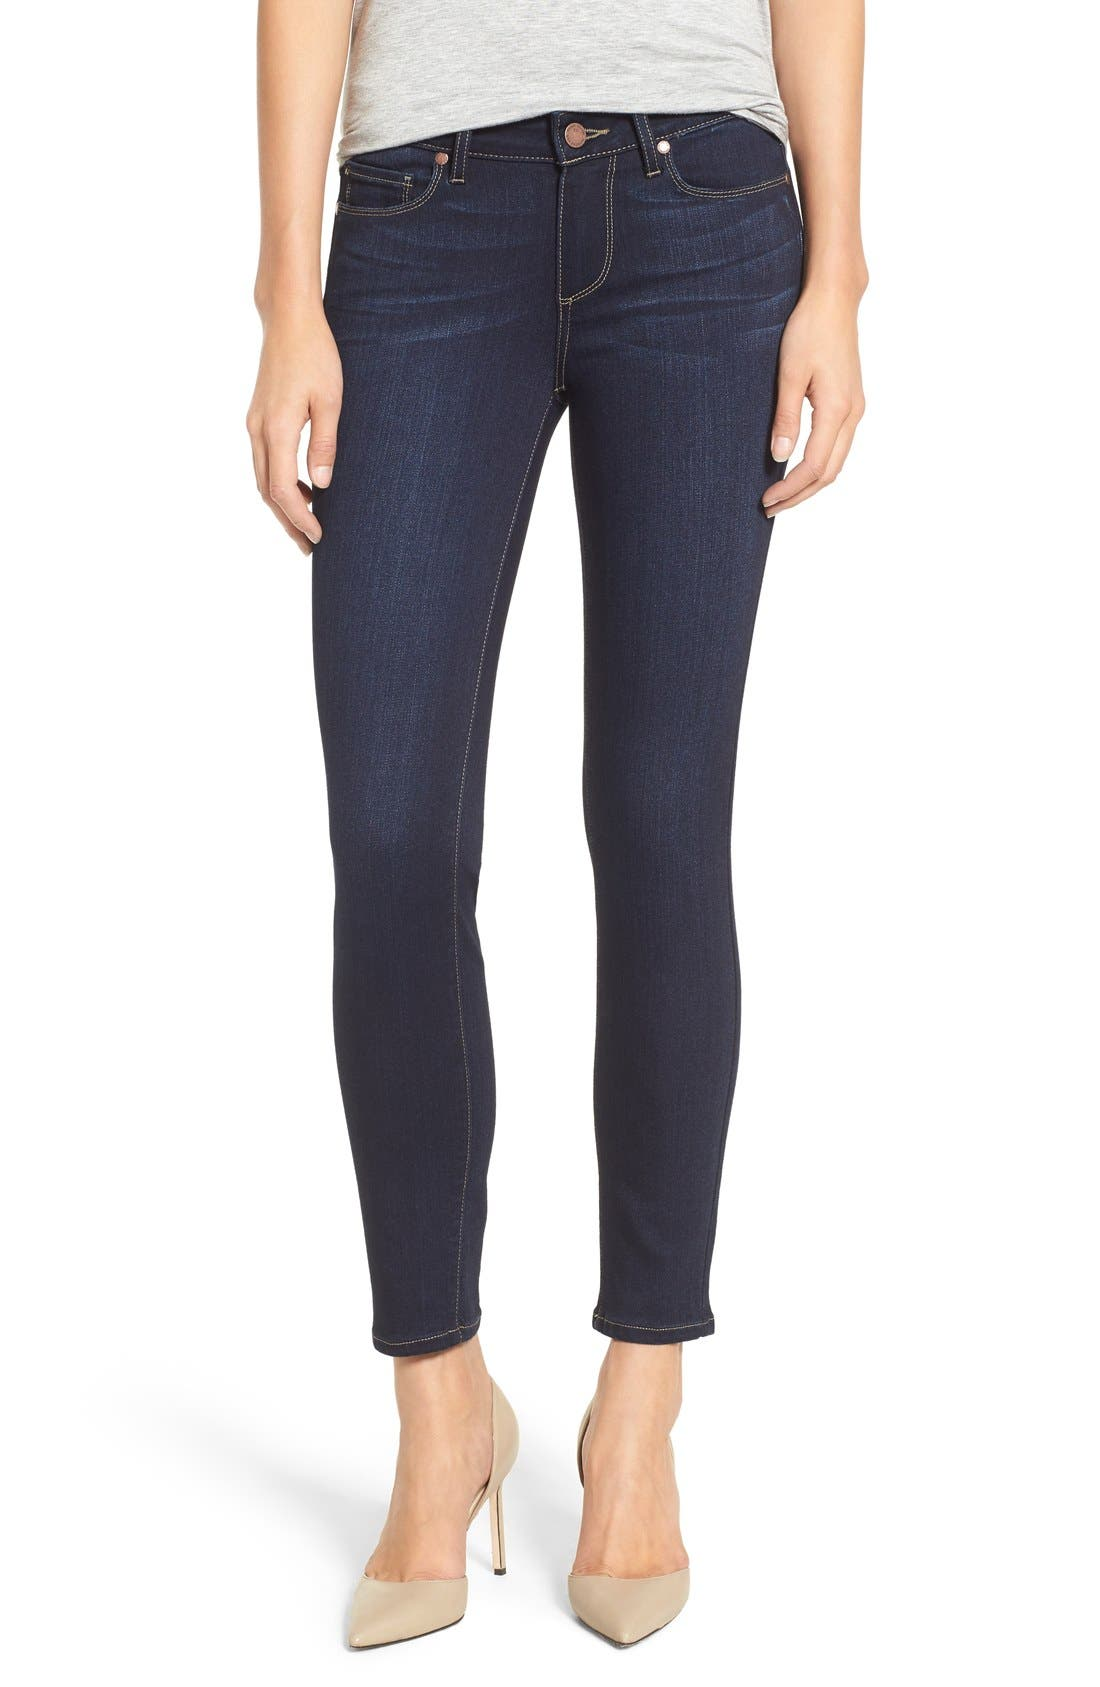 Alternate Image 1 Selected - PAIGE 'Transcend - Verdugo' Ankle Skinny Jeans (Tari)